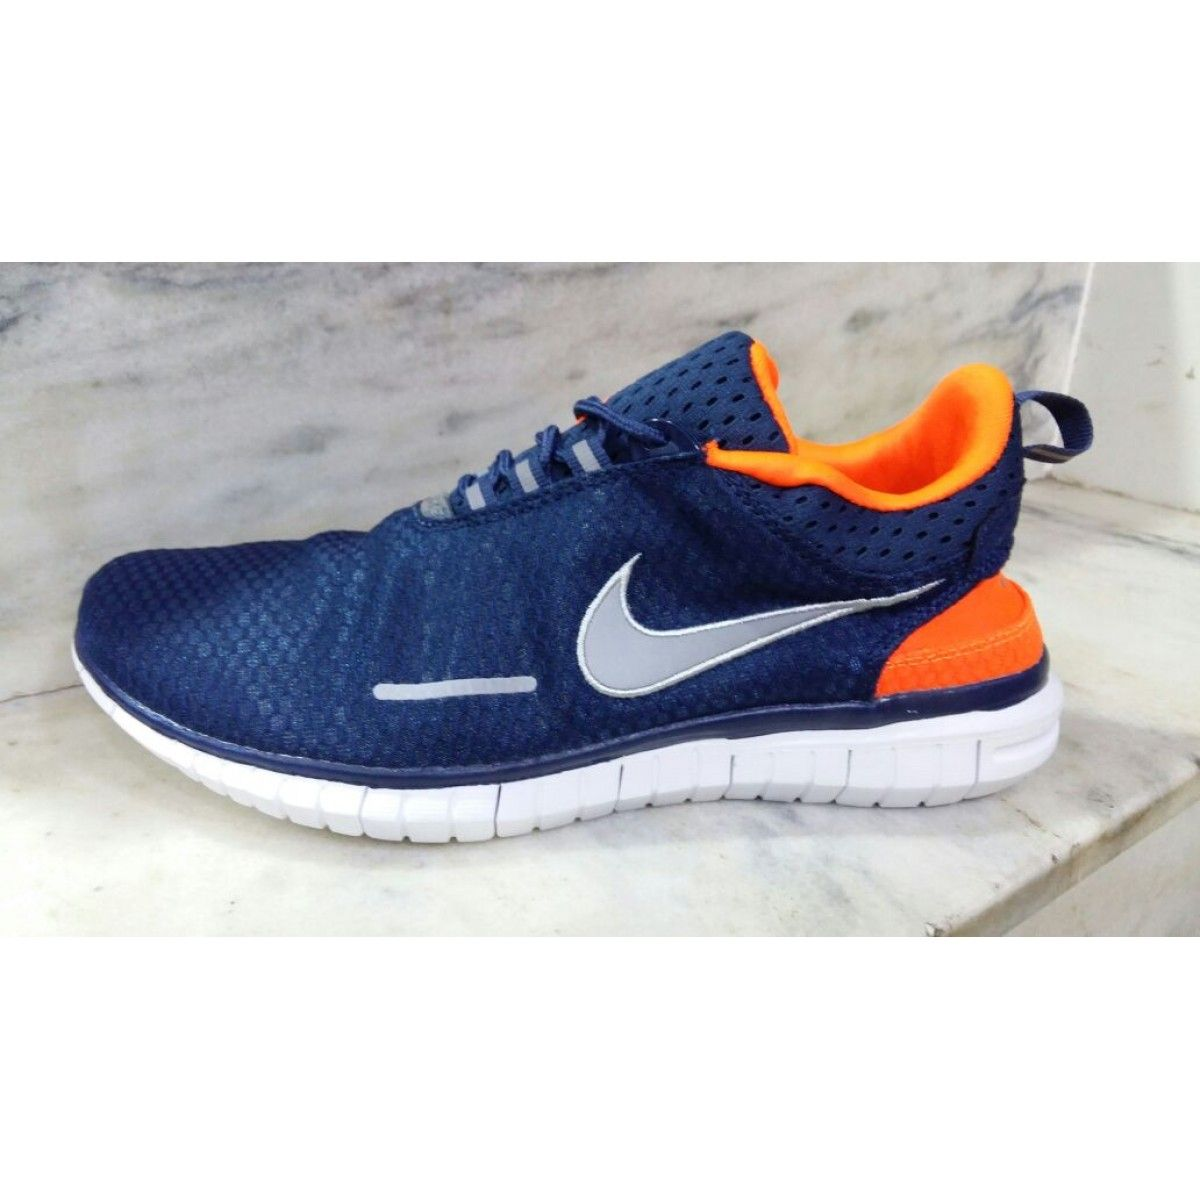 wholesale dealer cc6f7 d60ba Nike Free Run OG Breathe Blue Orange Running Shoes